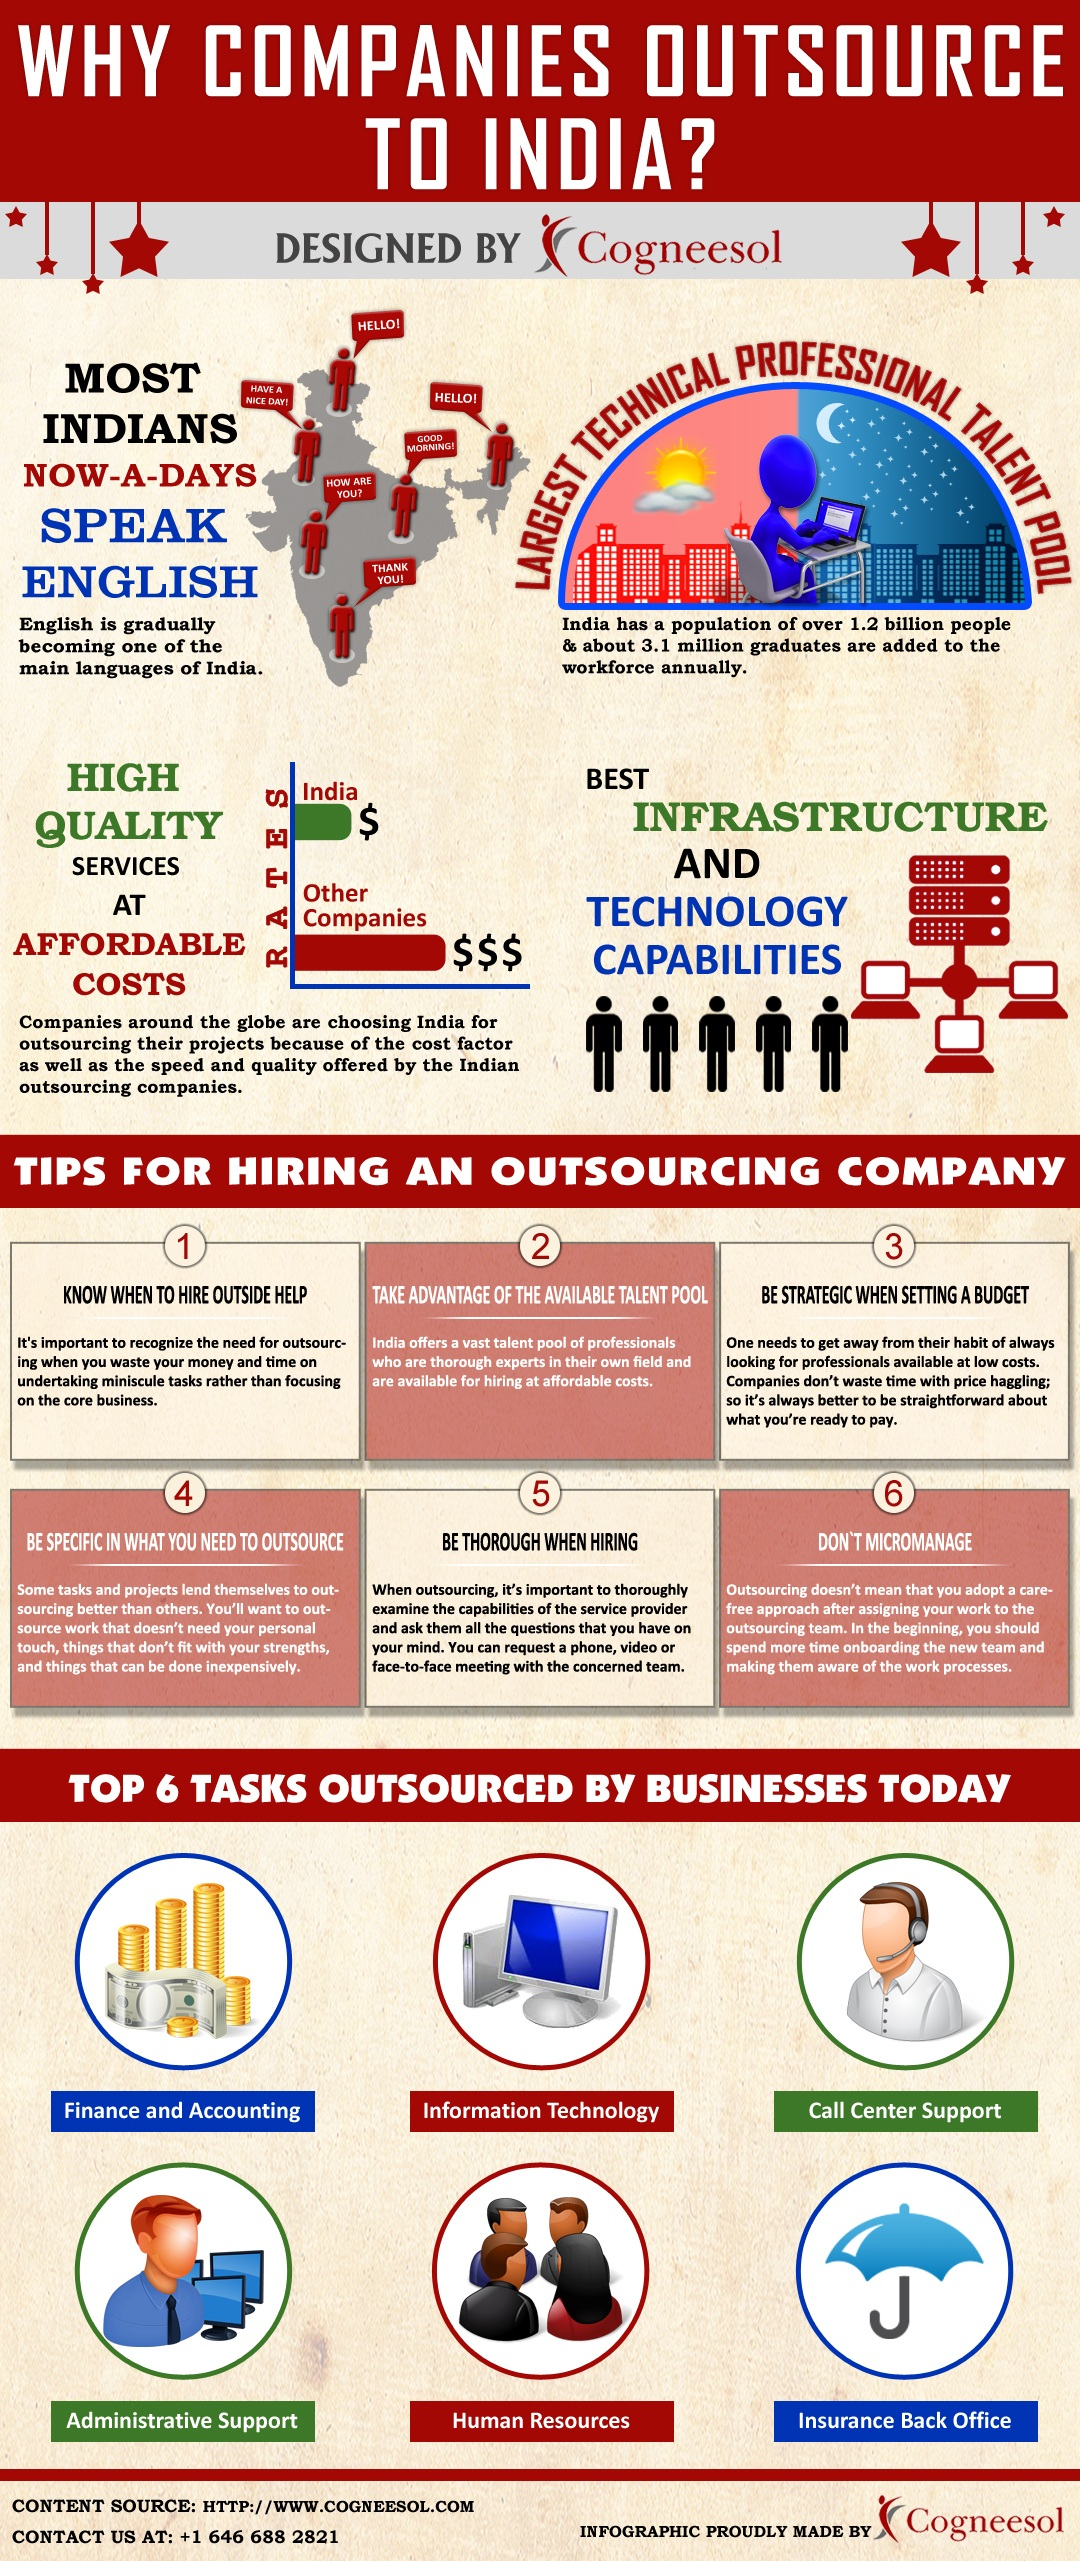 companies that outsource India's outsourcing business on the turn hackett, a florida-based firm that advises companies on outsourcing.